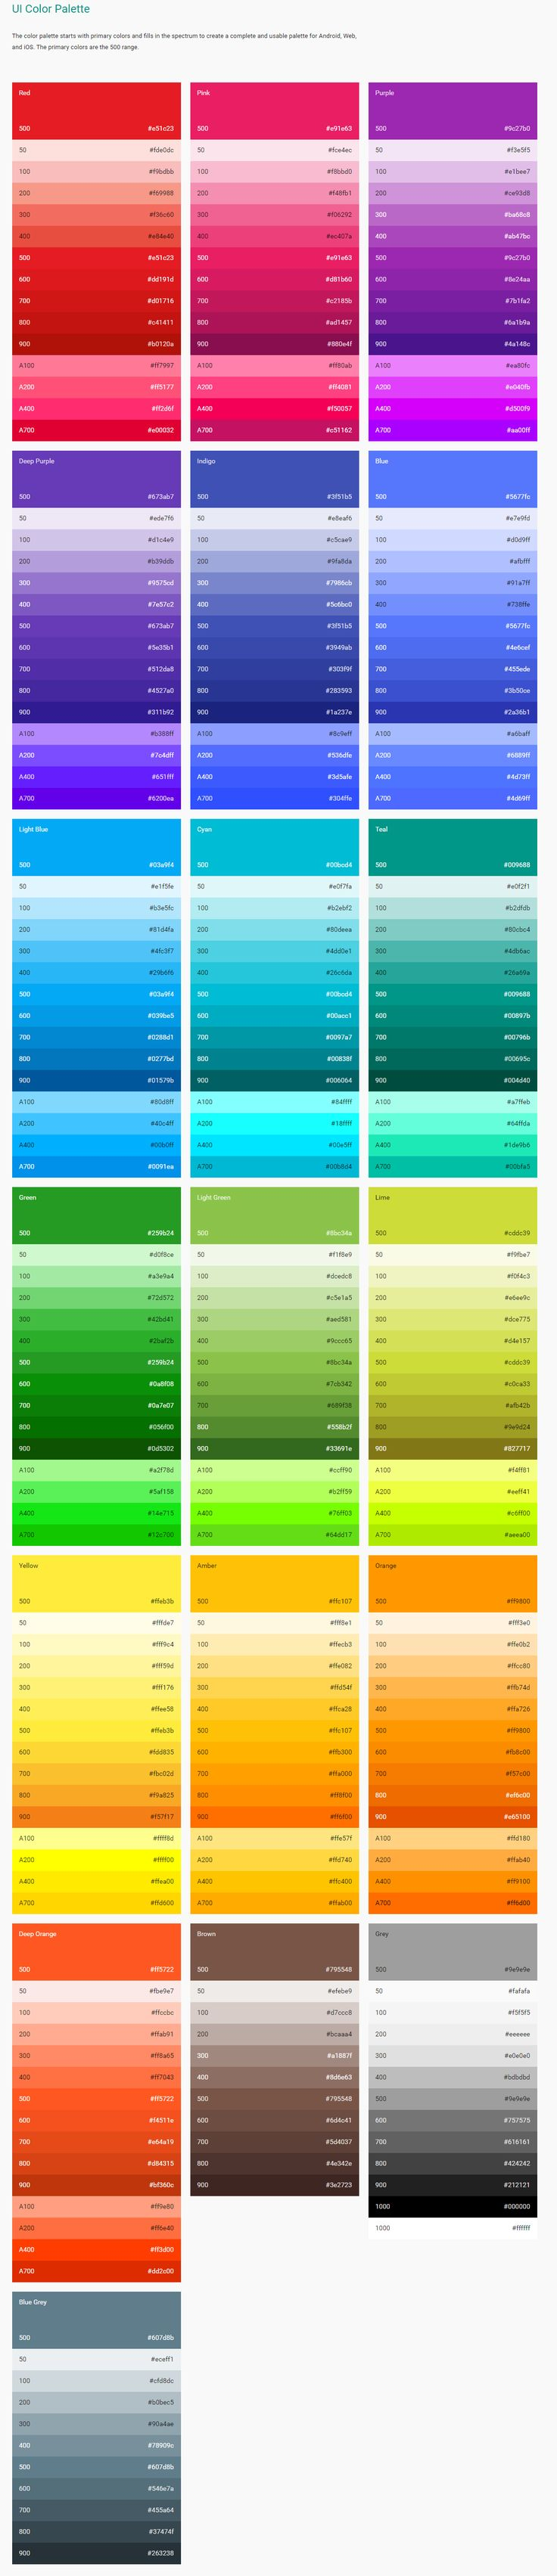 Google's 2014 Color Palette for Material Design  #google #MaterialDesign #design2014 #trends #googleUI